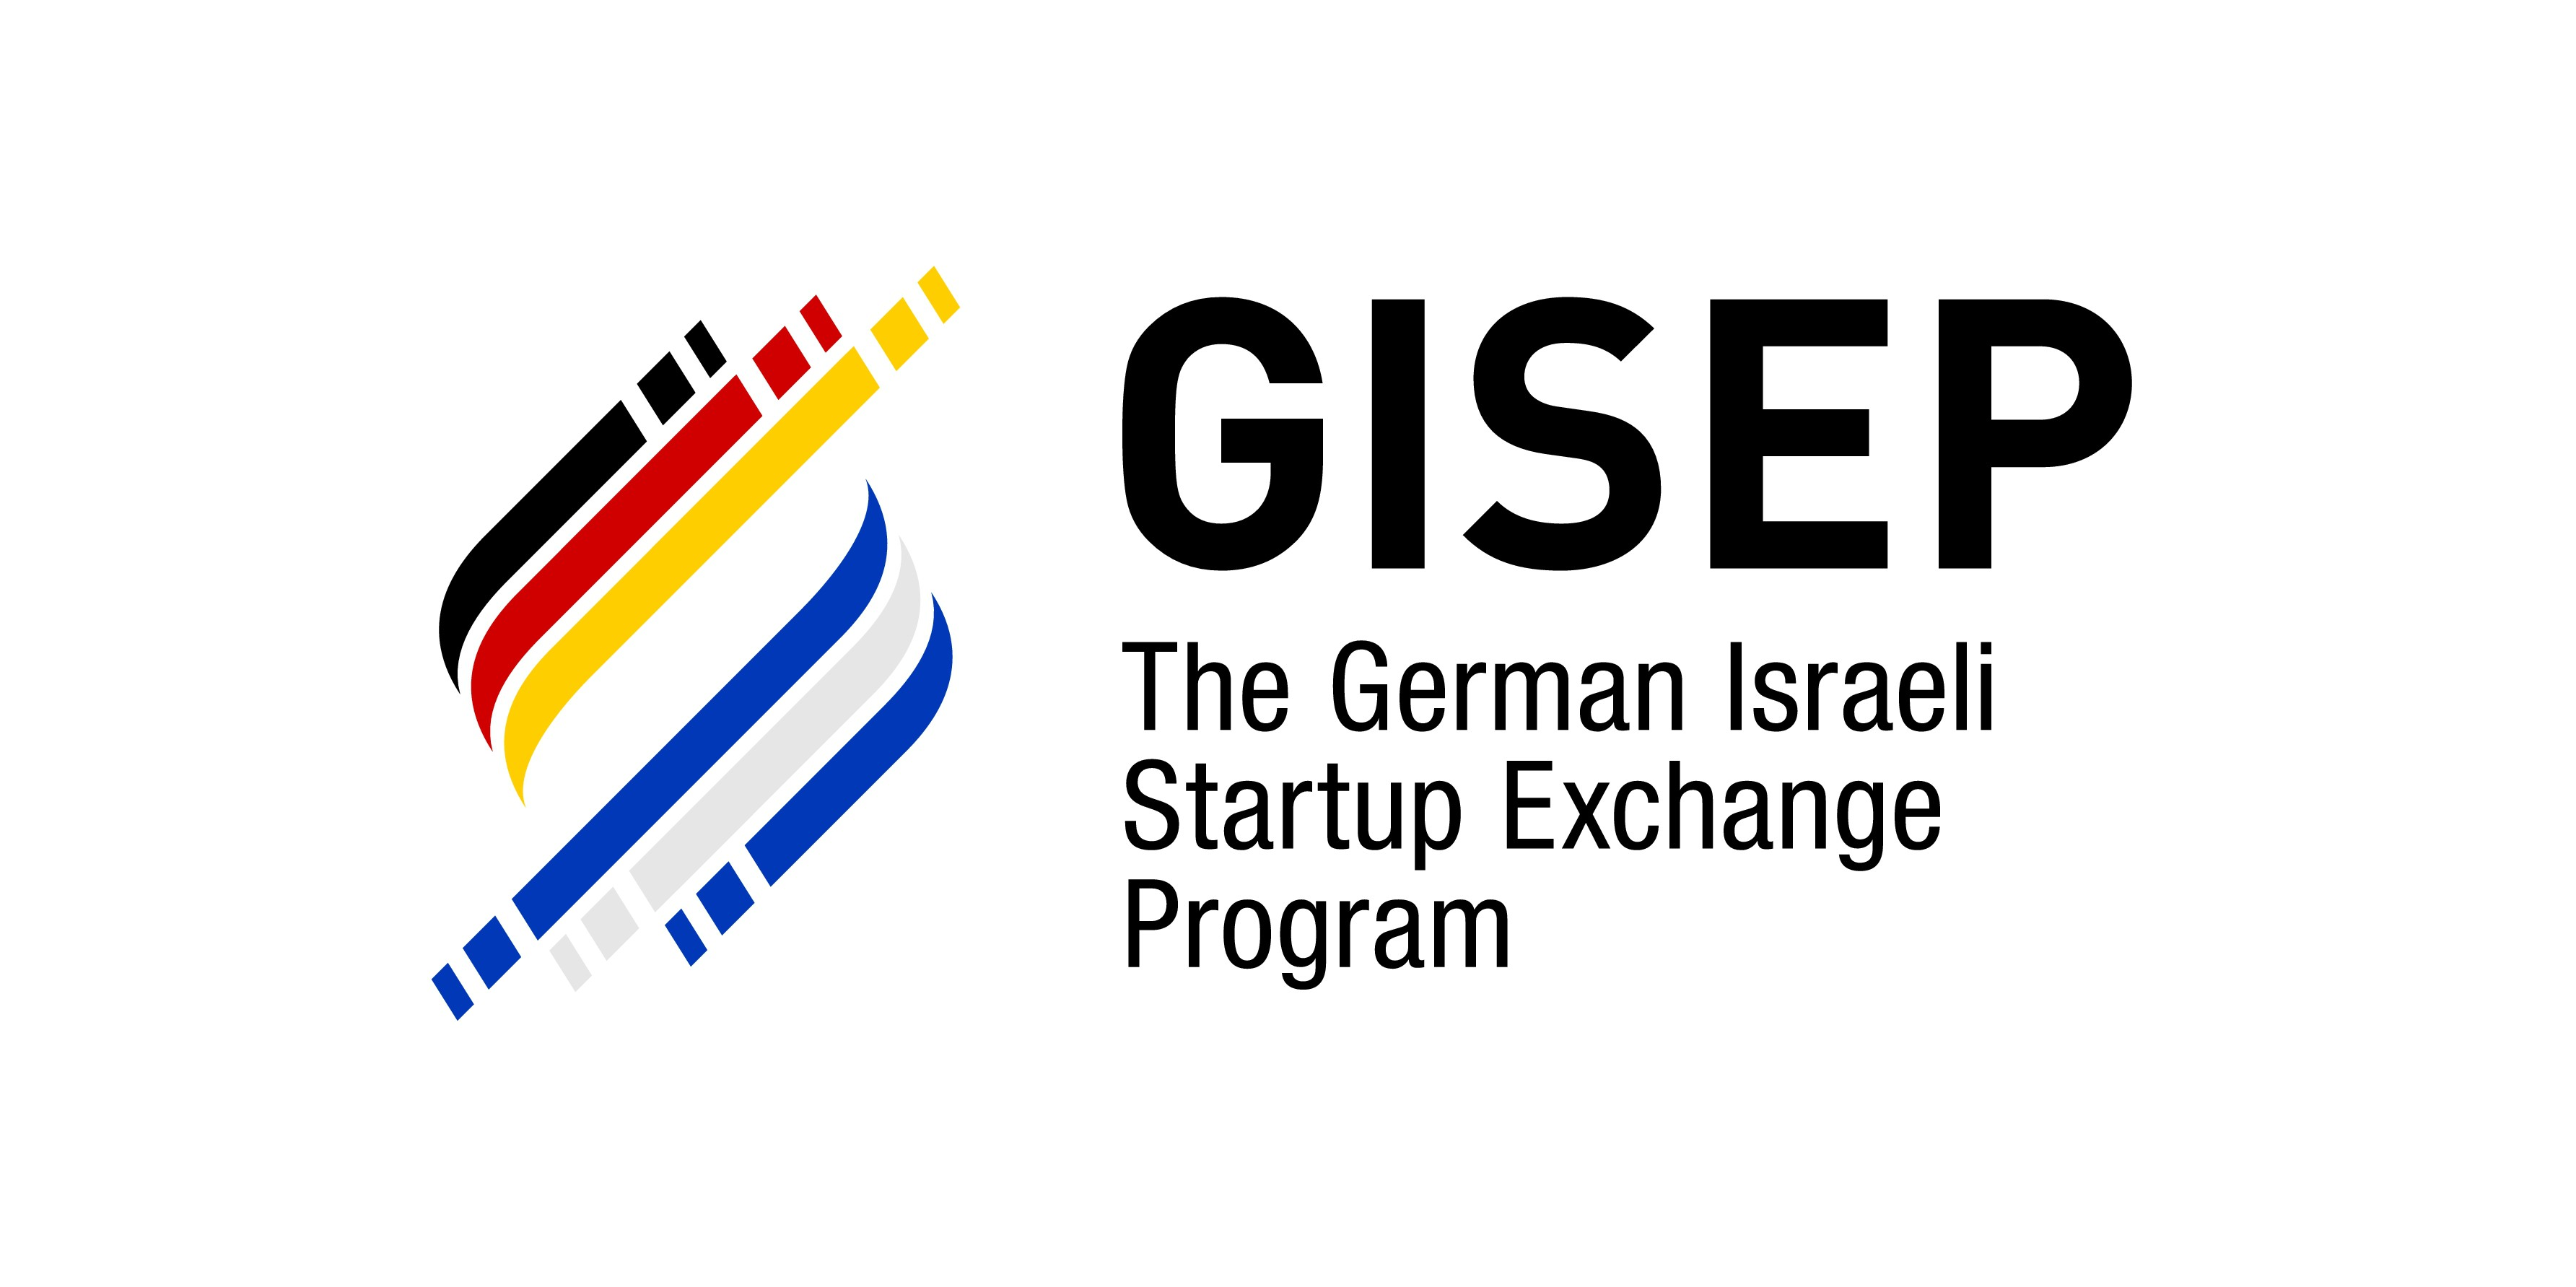 Create a logo and business cards for German Israeli Startup Exchange (GISEP)